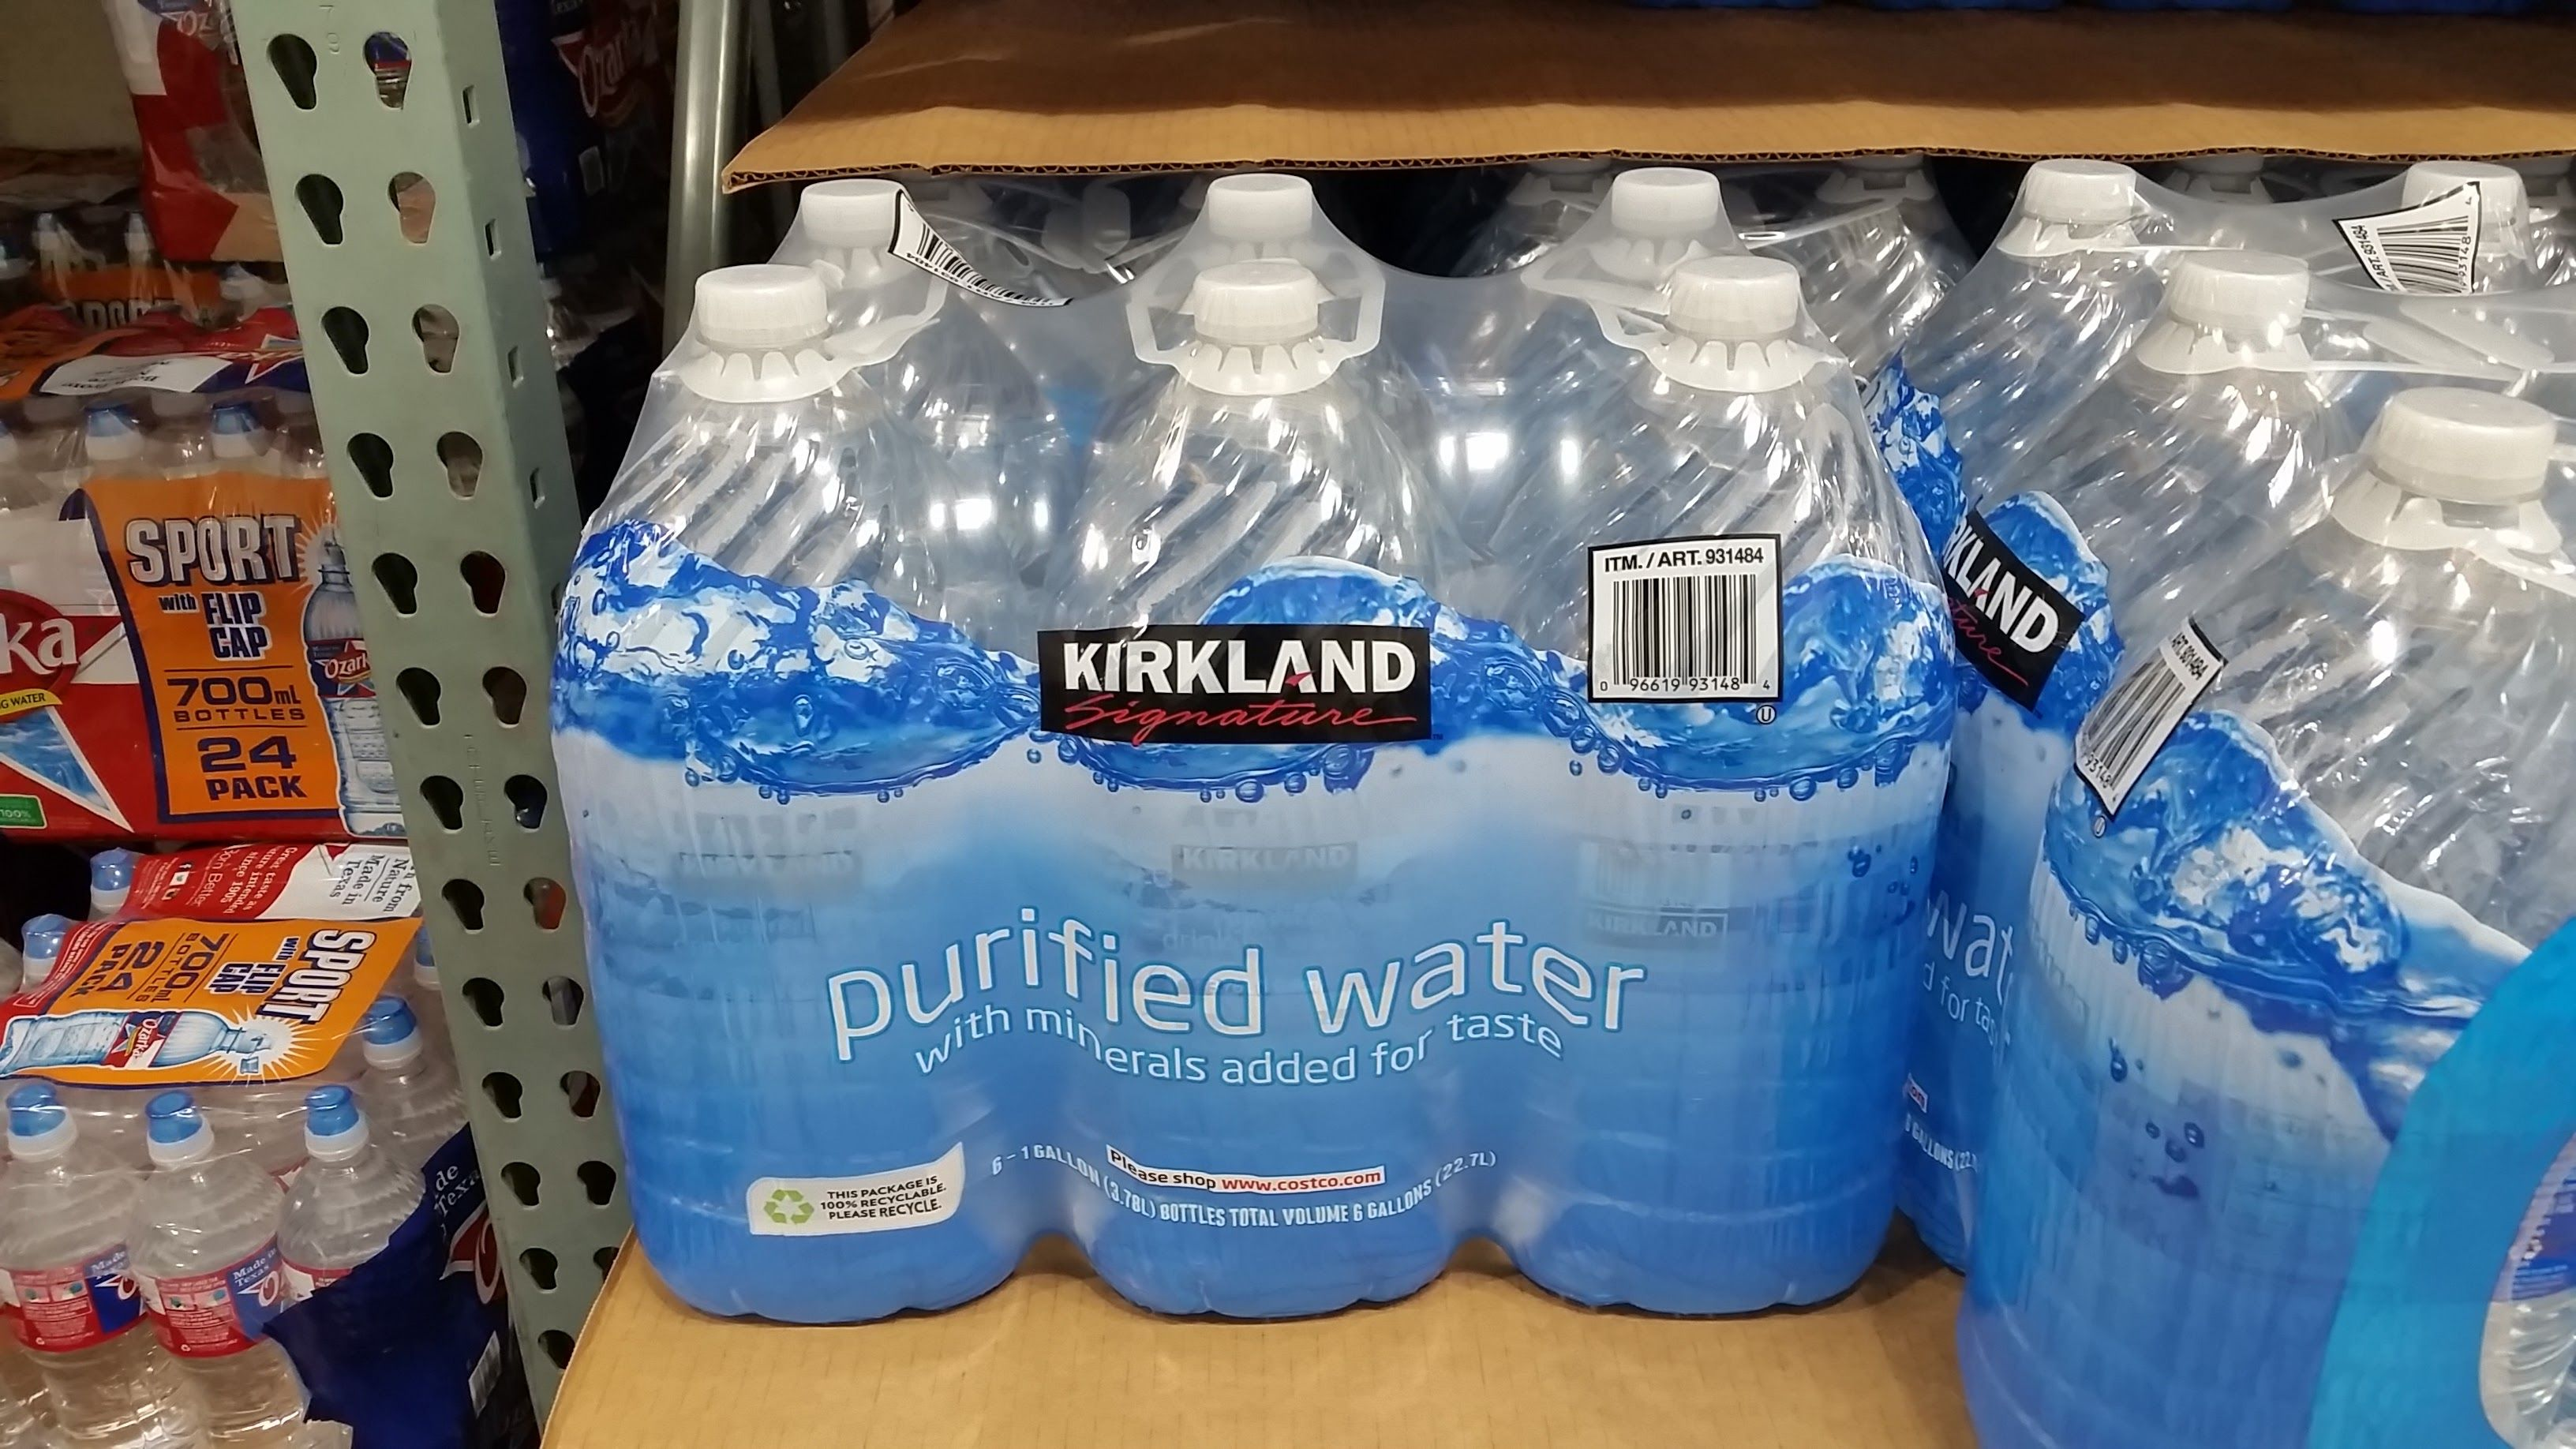 Single gallon waters  Pack of 6 sold at Costco  To fill up 5